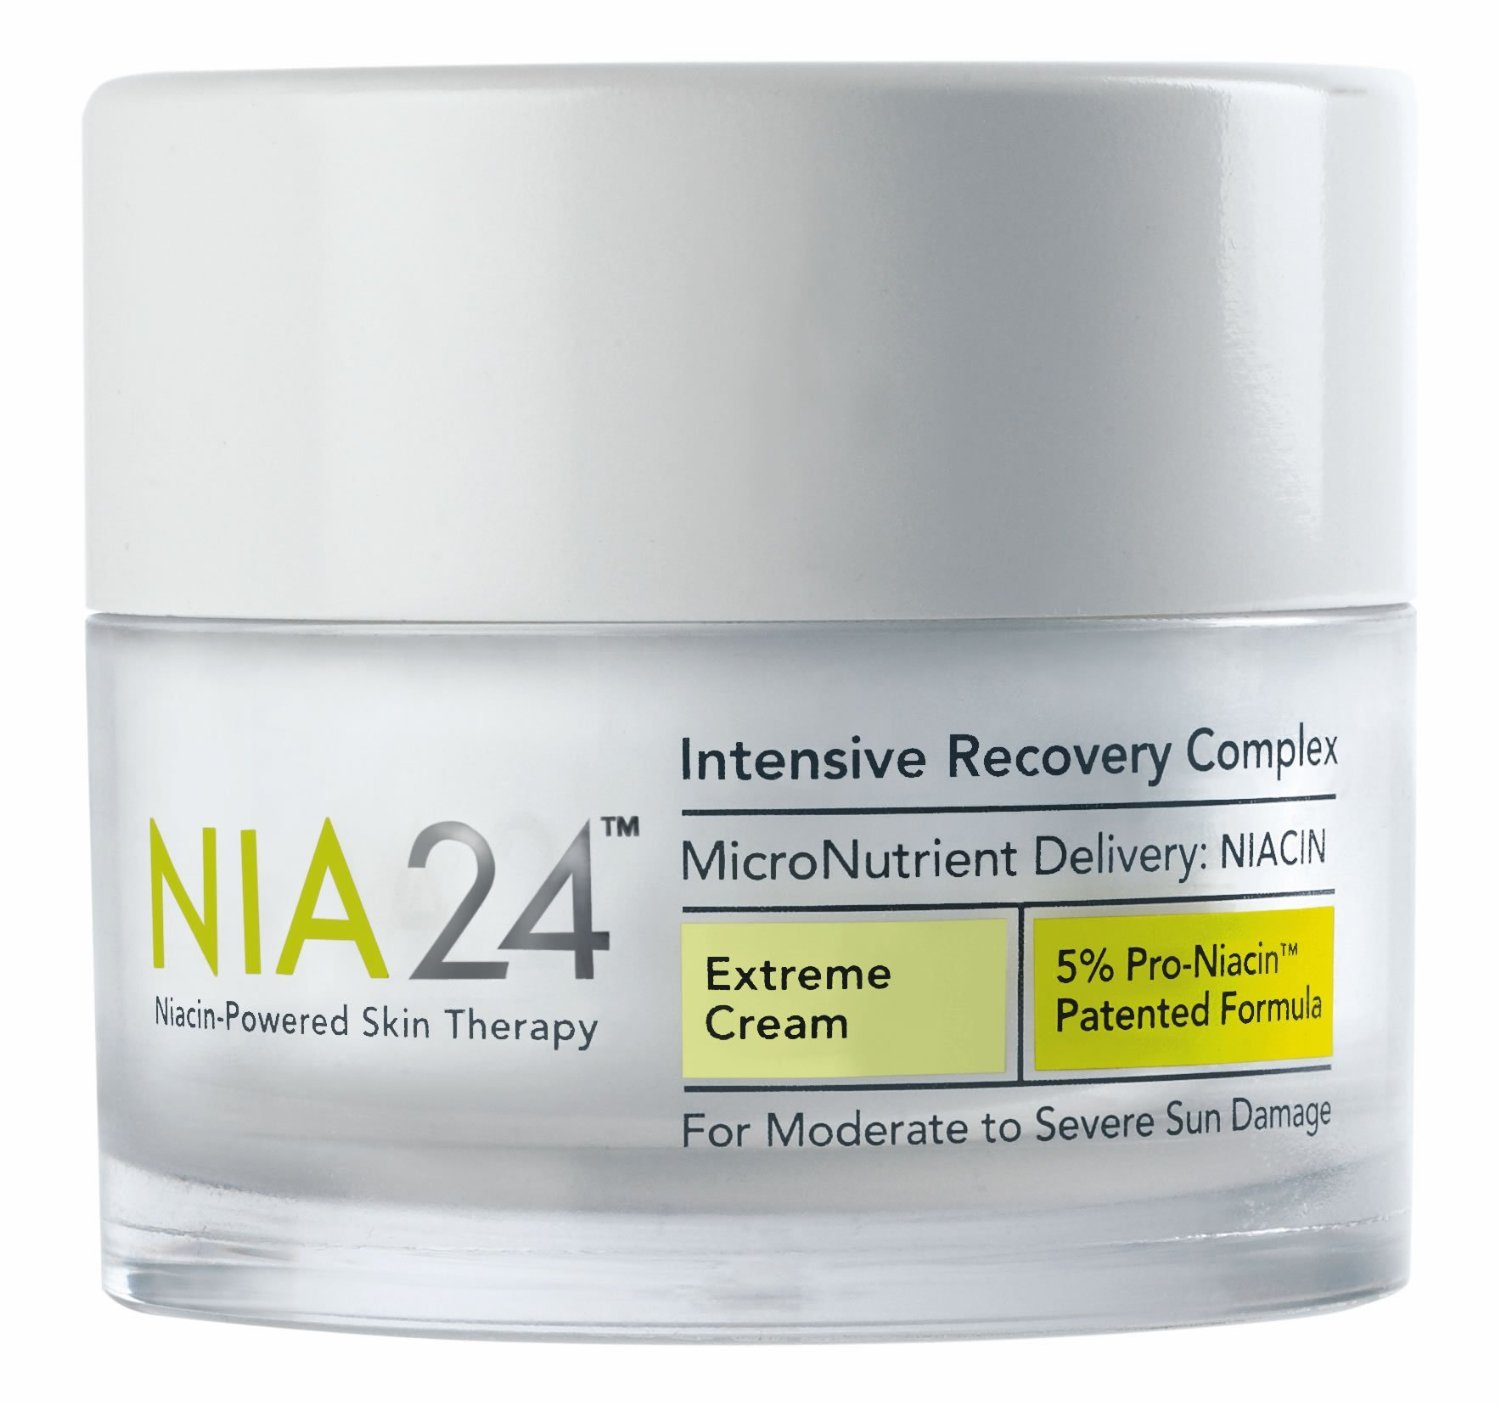 Nia 24 Intensive Recovery Complex